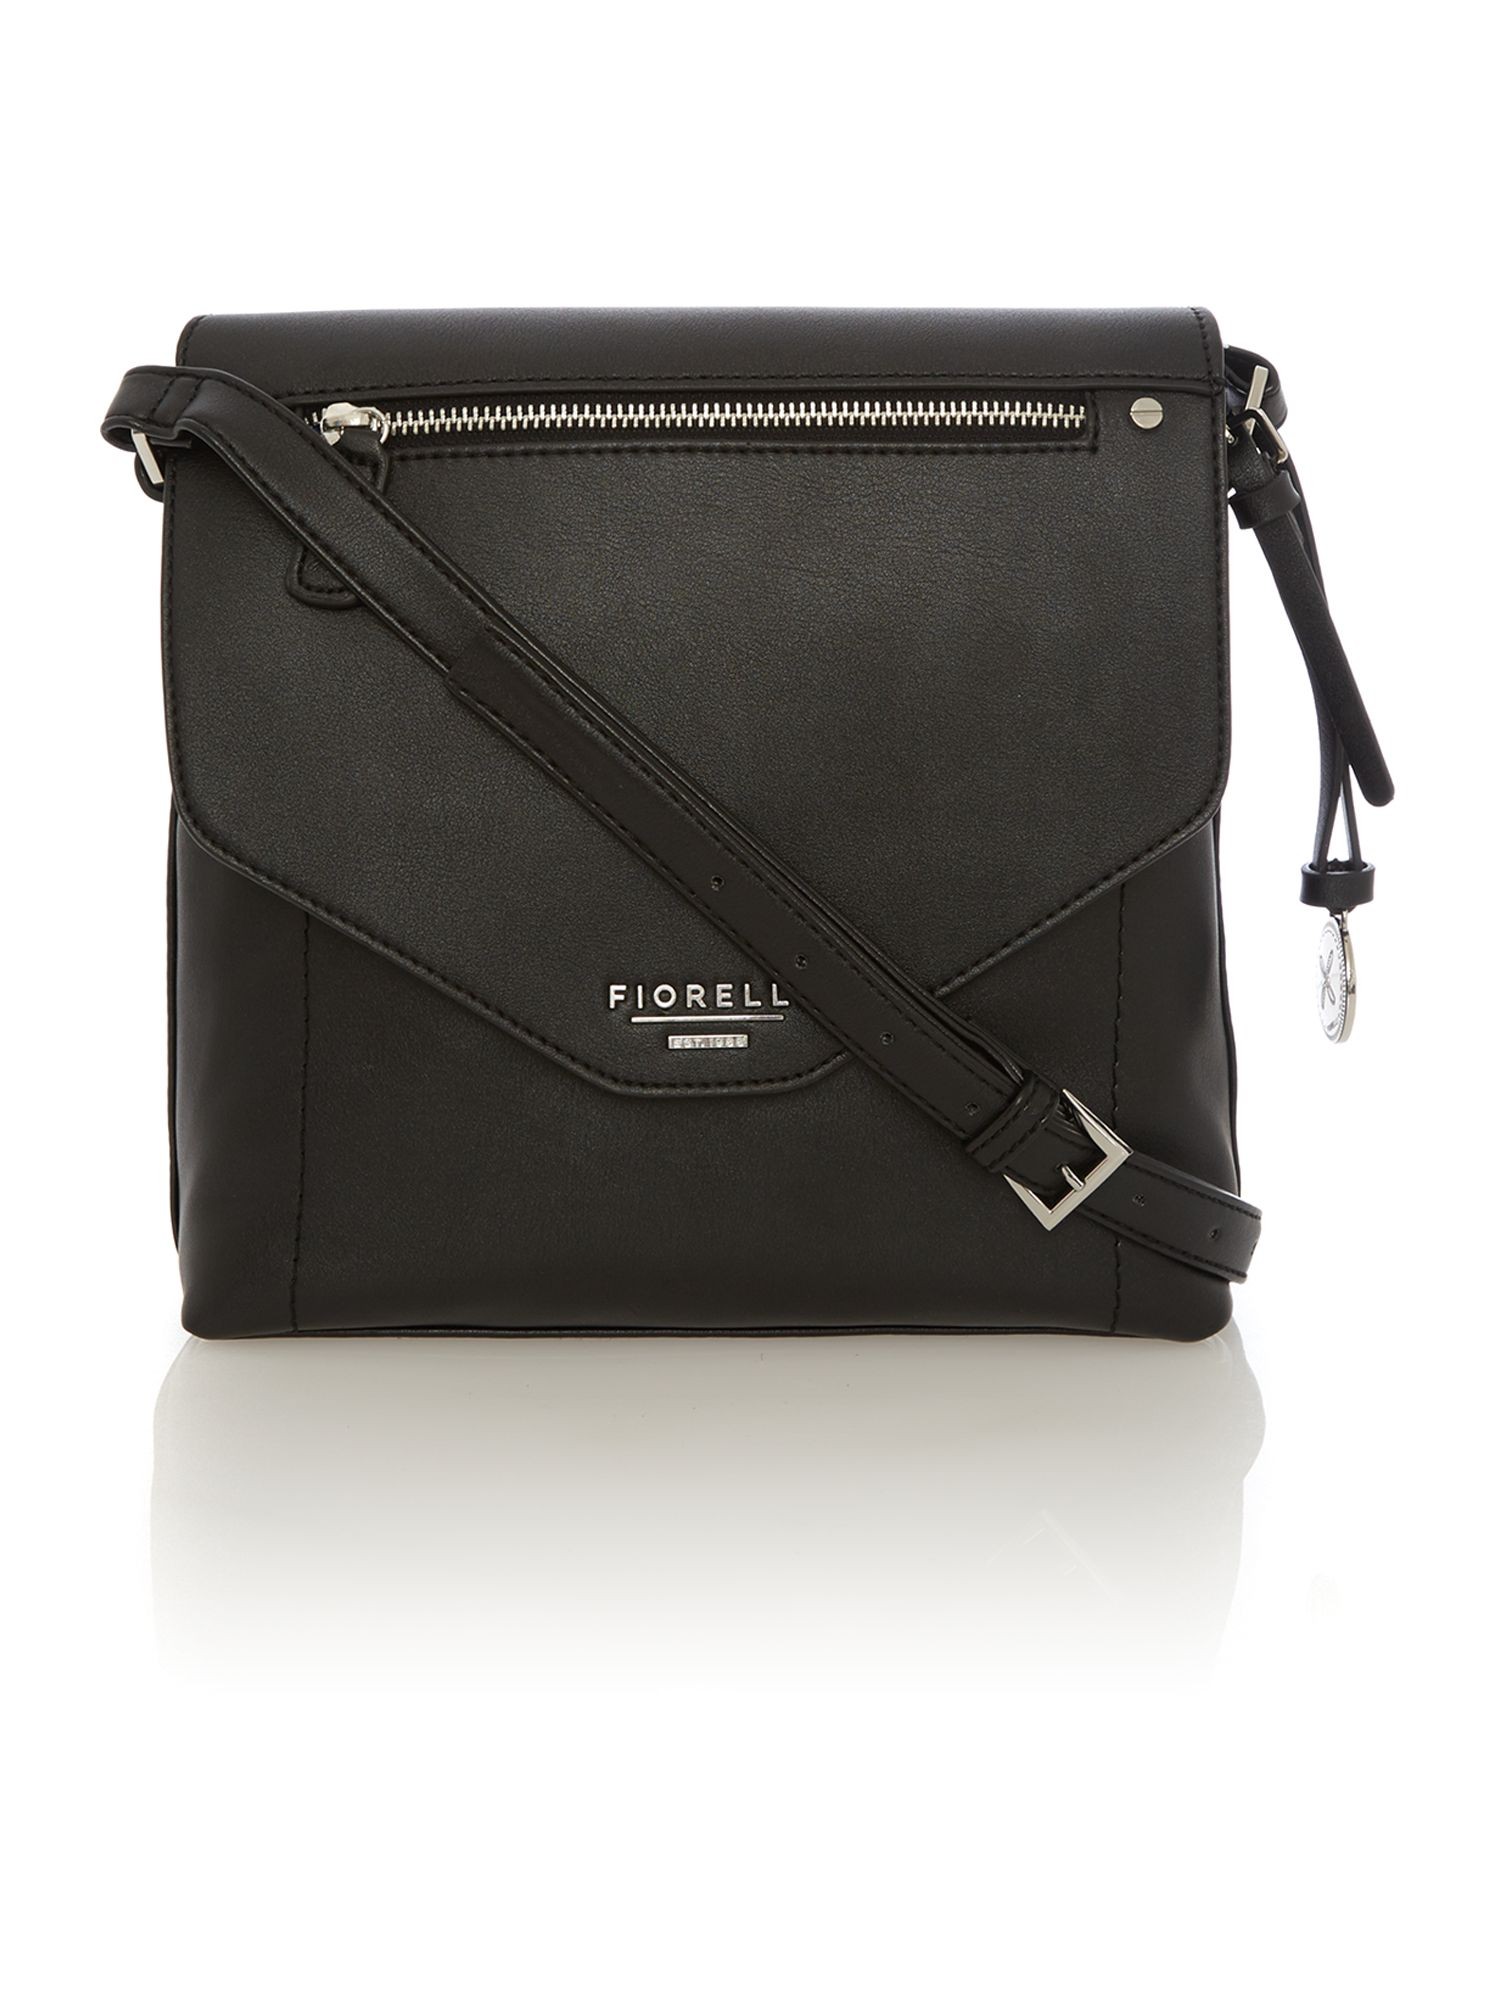 Chloe black crossbody bag